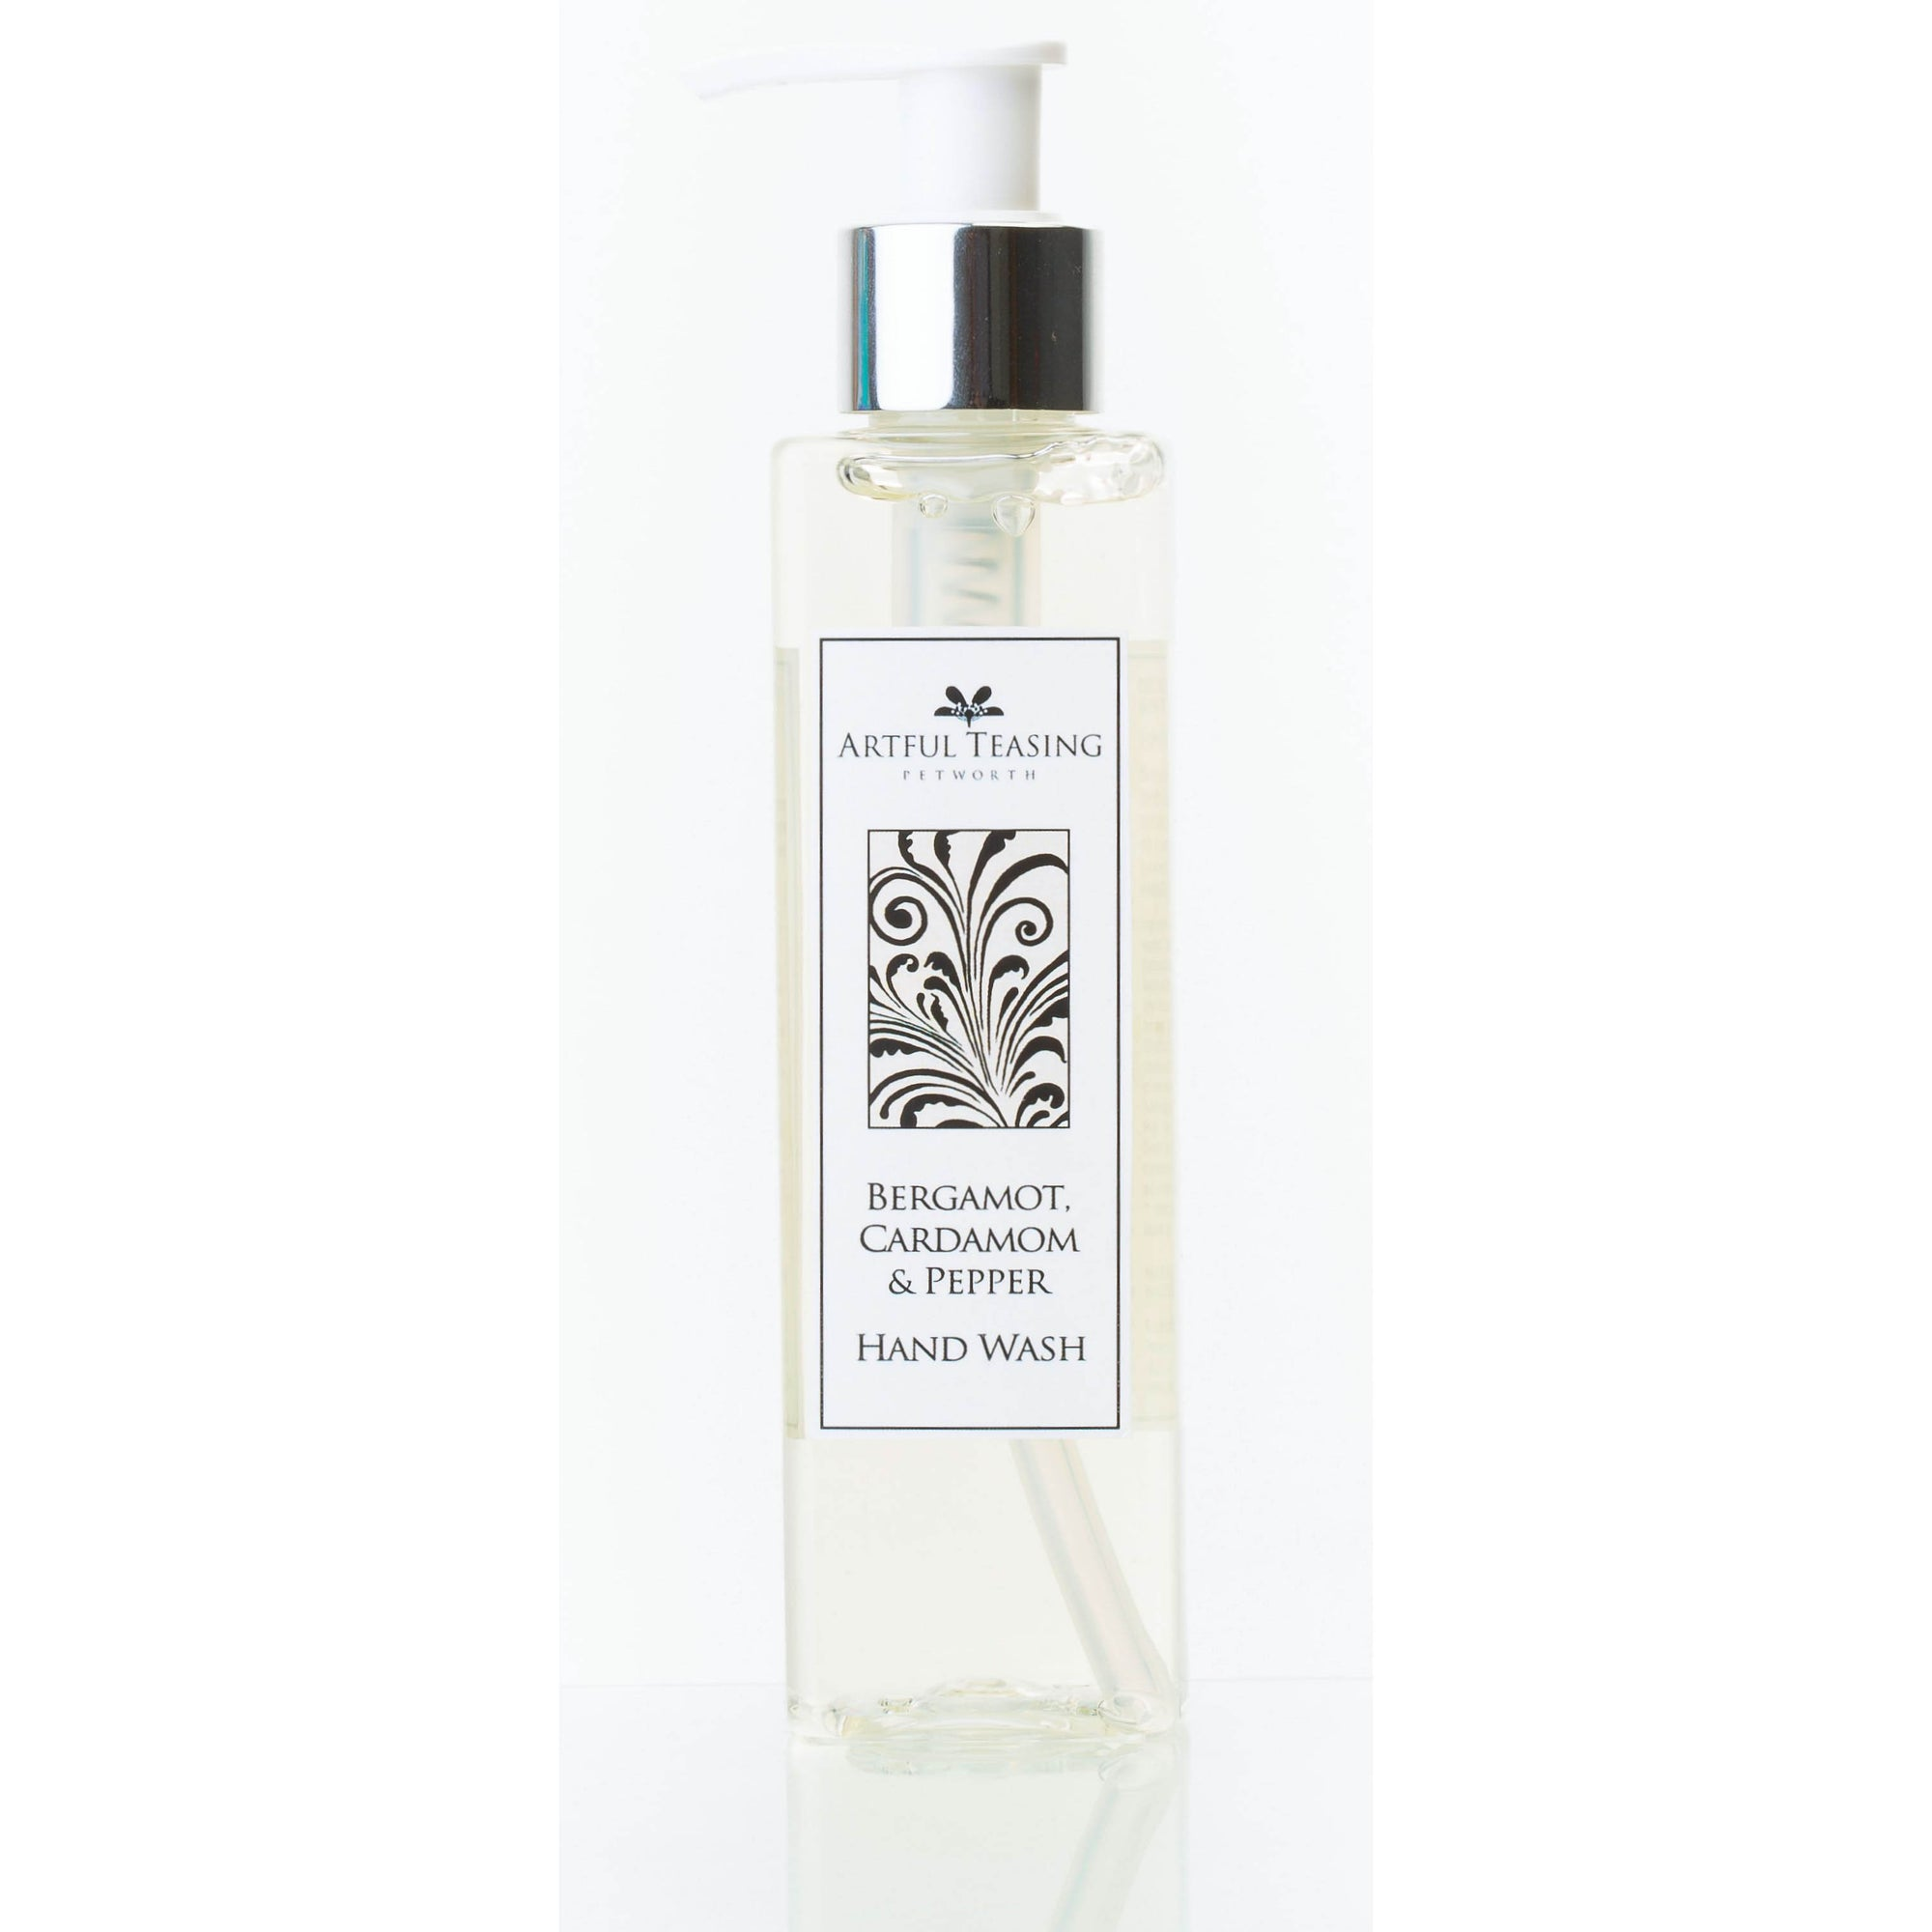 Bergamot, Cardamom & Pepper Hand Wash 200ml